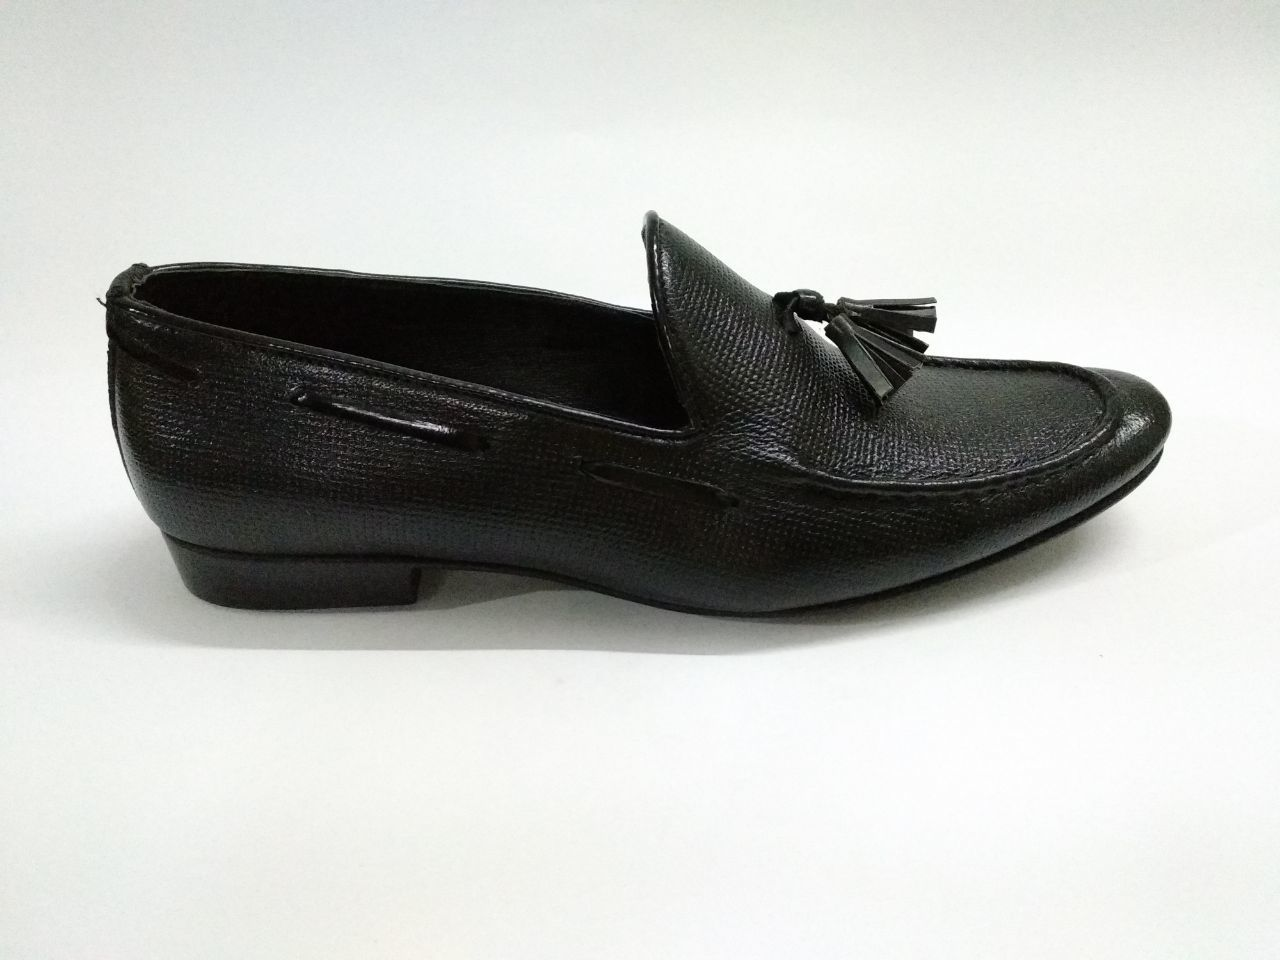 CASUAL LEATHER SHOES FOR MEN'S